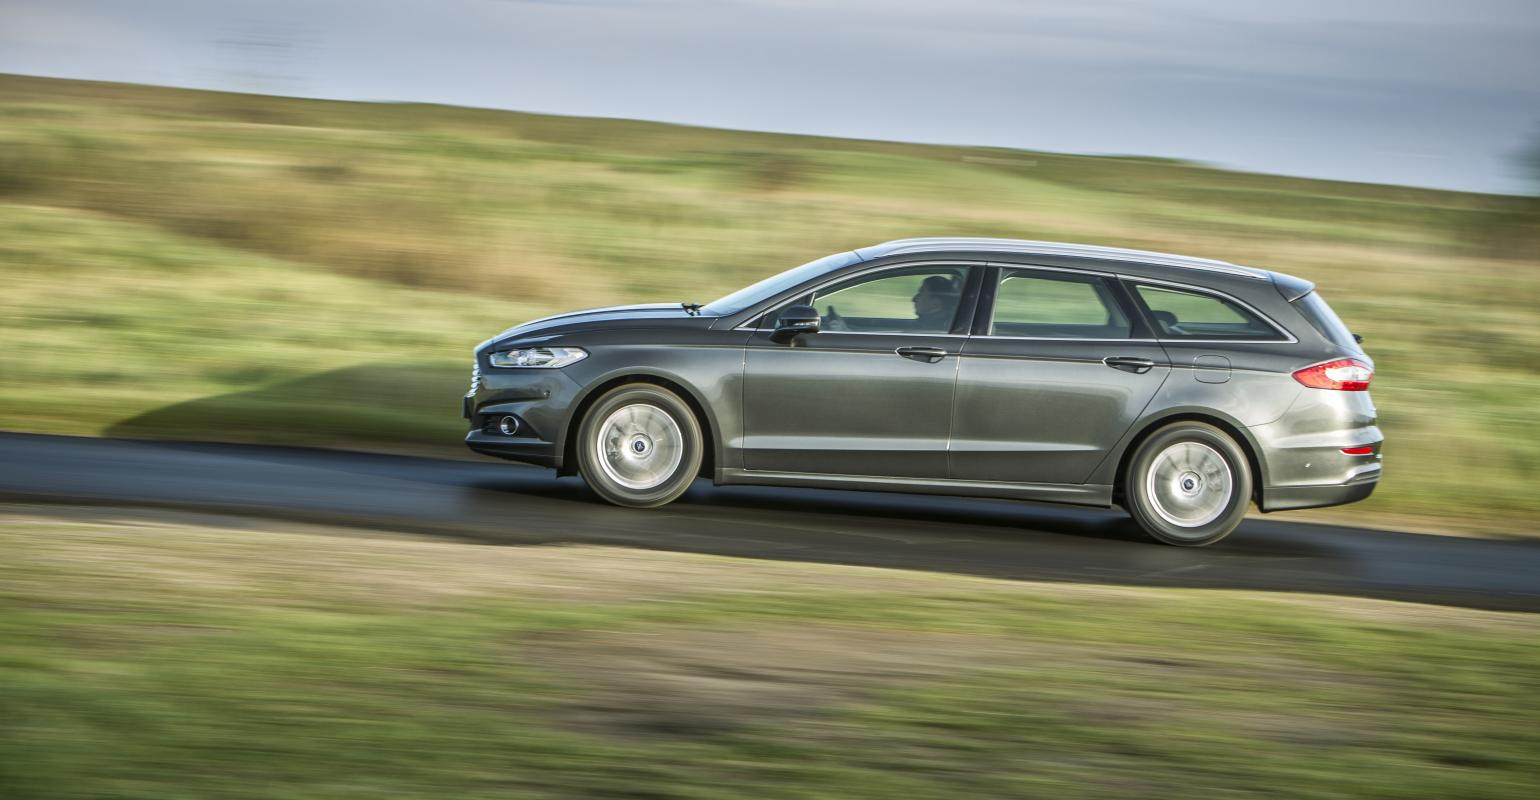 Station wagon among fords new generation of mondeo hybrid models